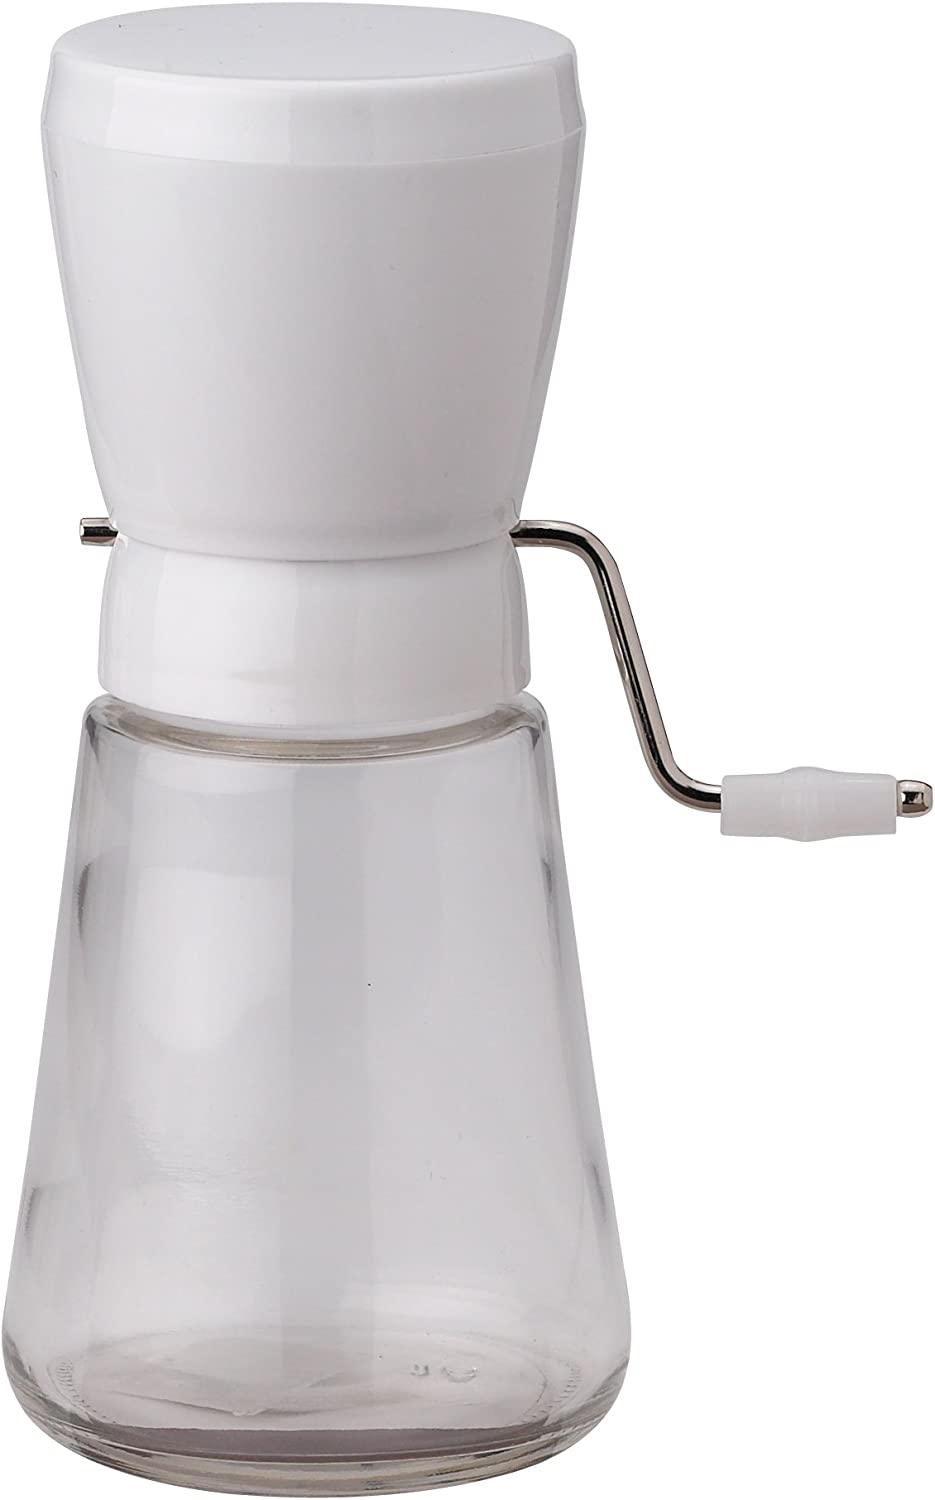 HIC Harold Import Co. HIC Manual Nut Chopper, White